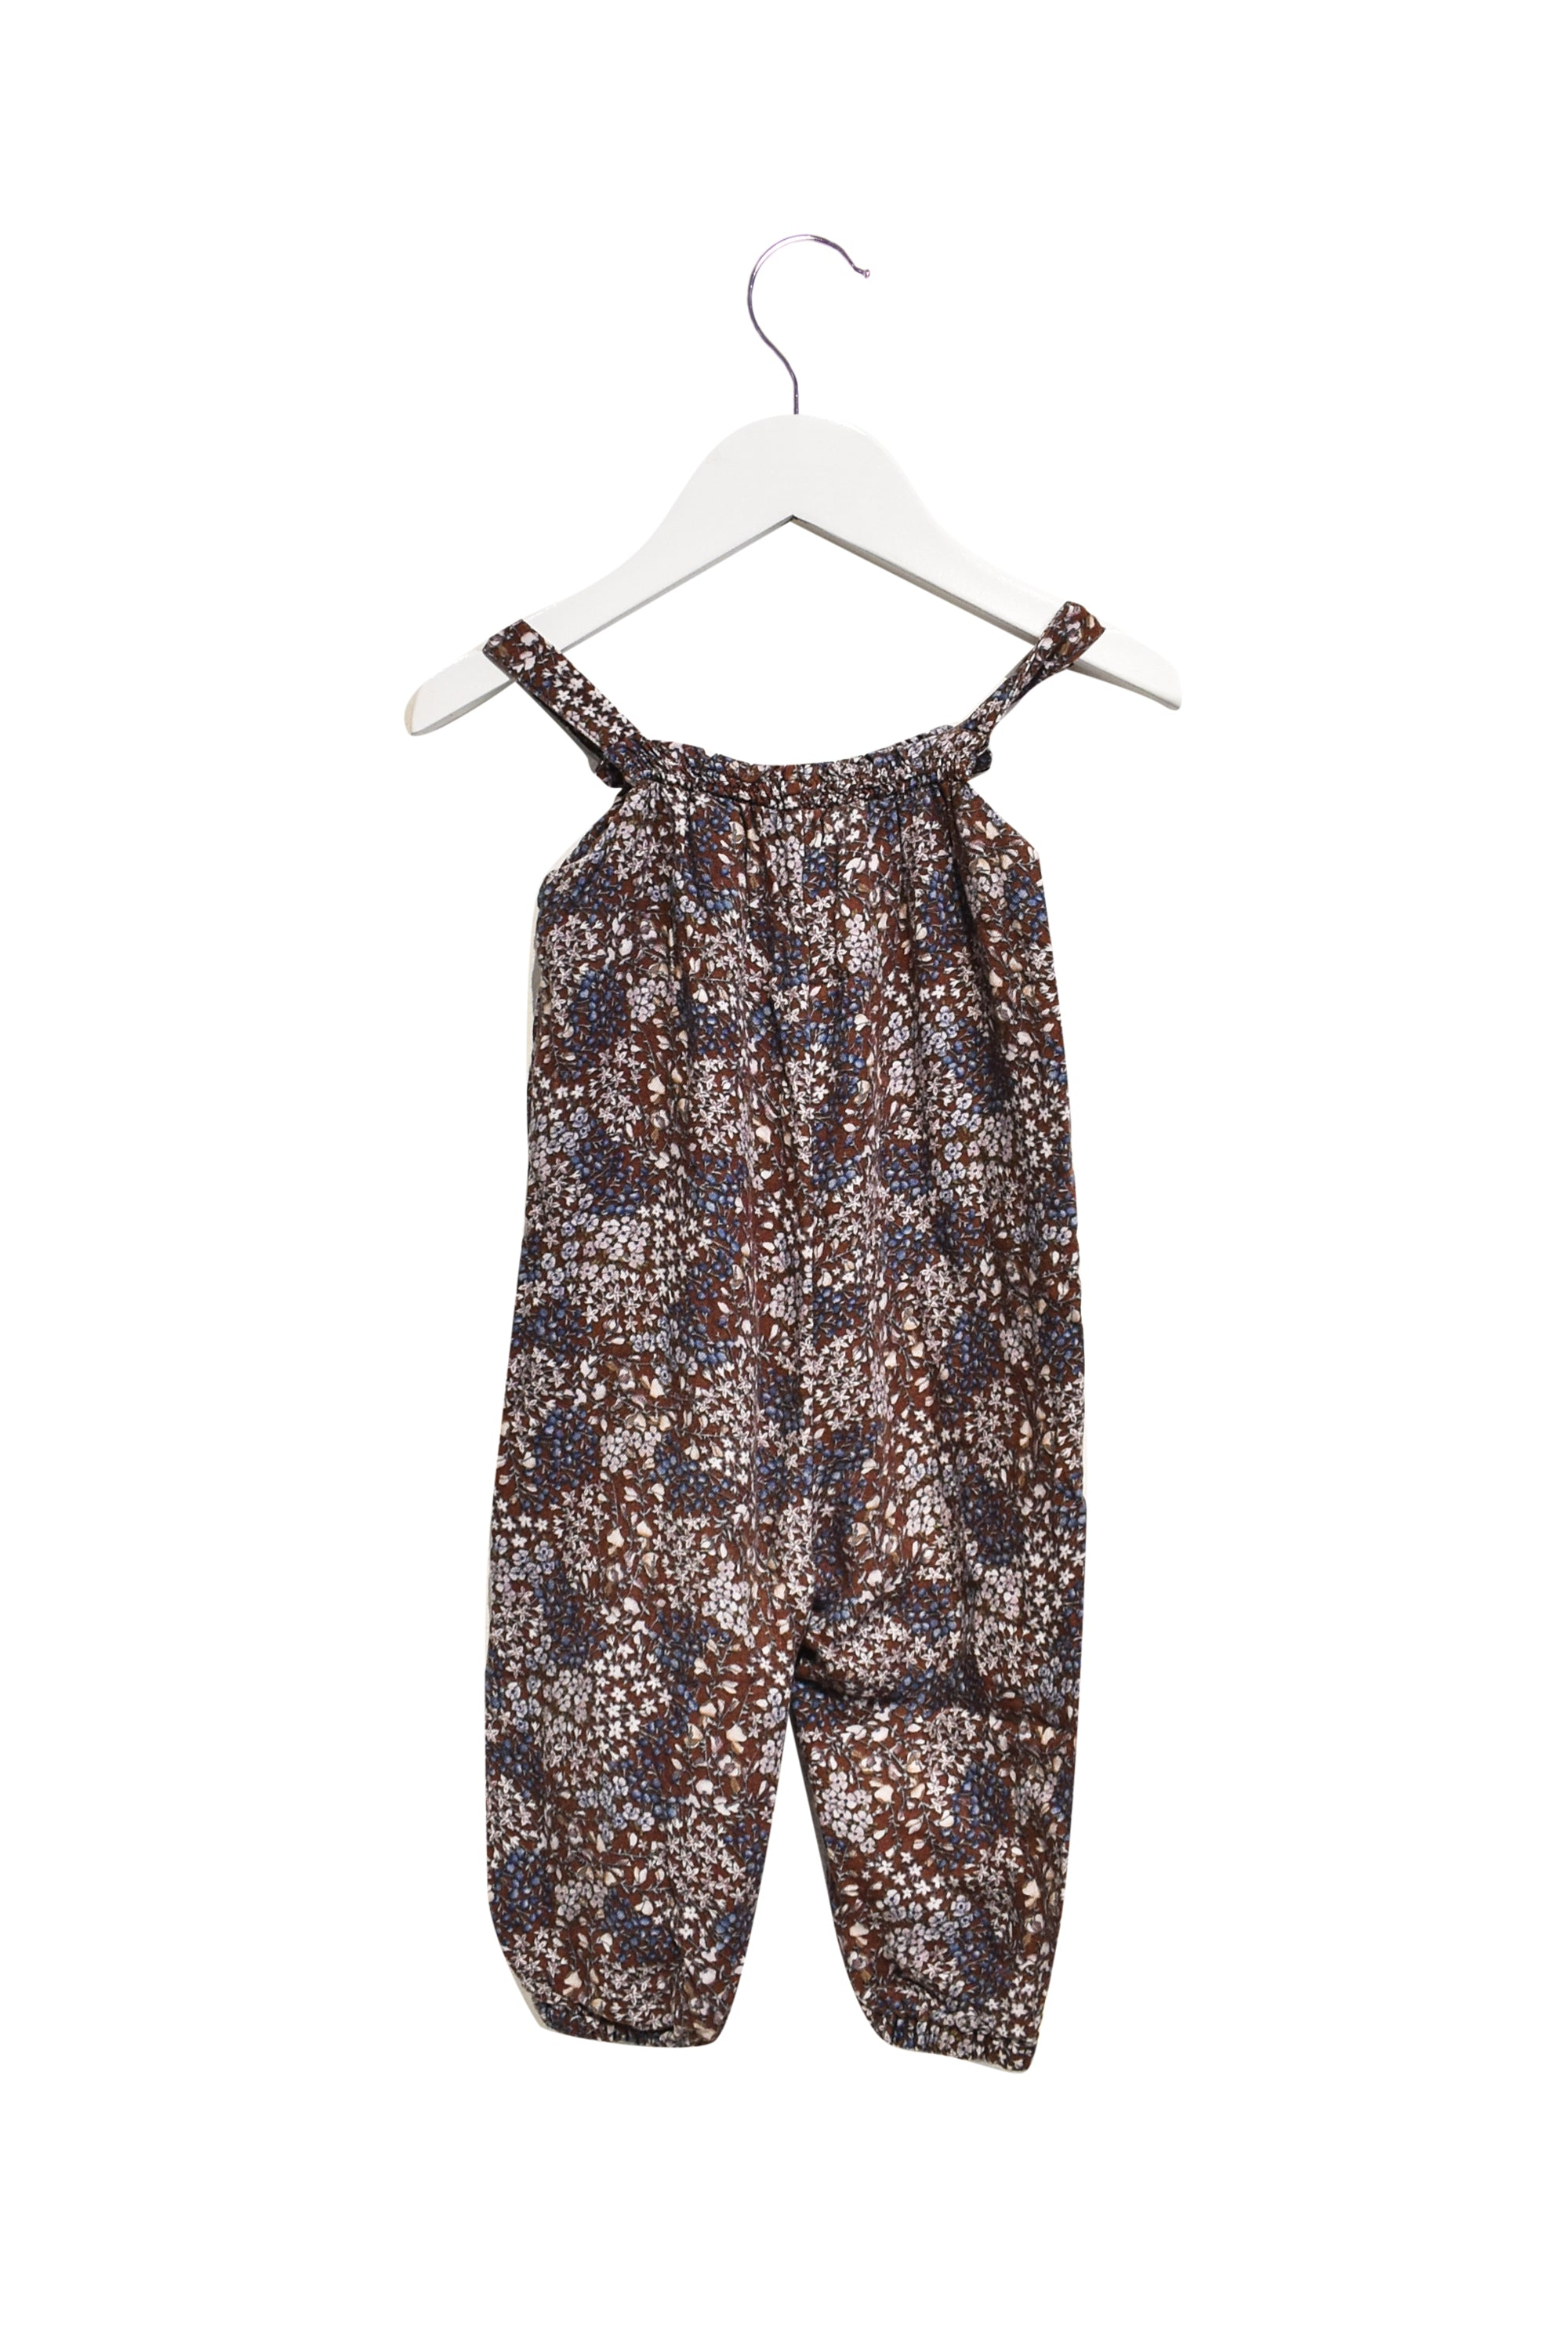 f74a4fd76 10016199 Gucci Baby~Jumpsuit 9-12M at Retykle